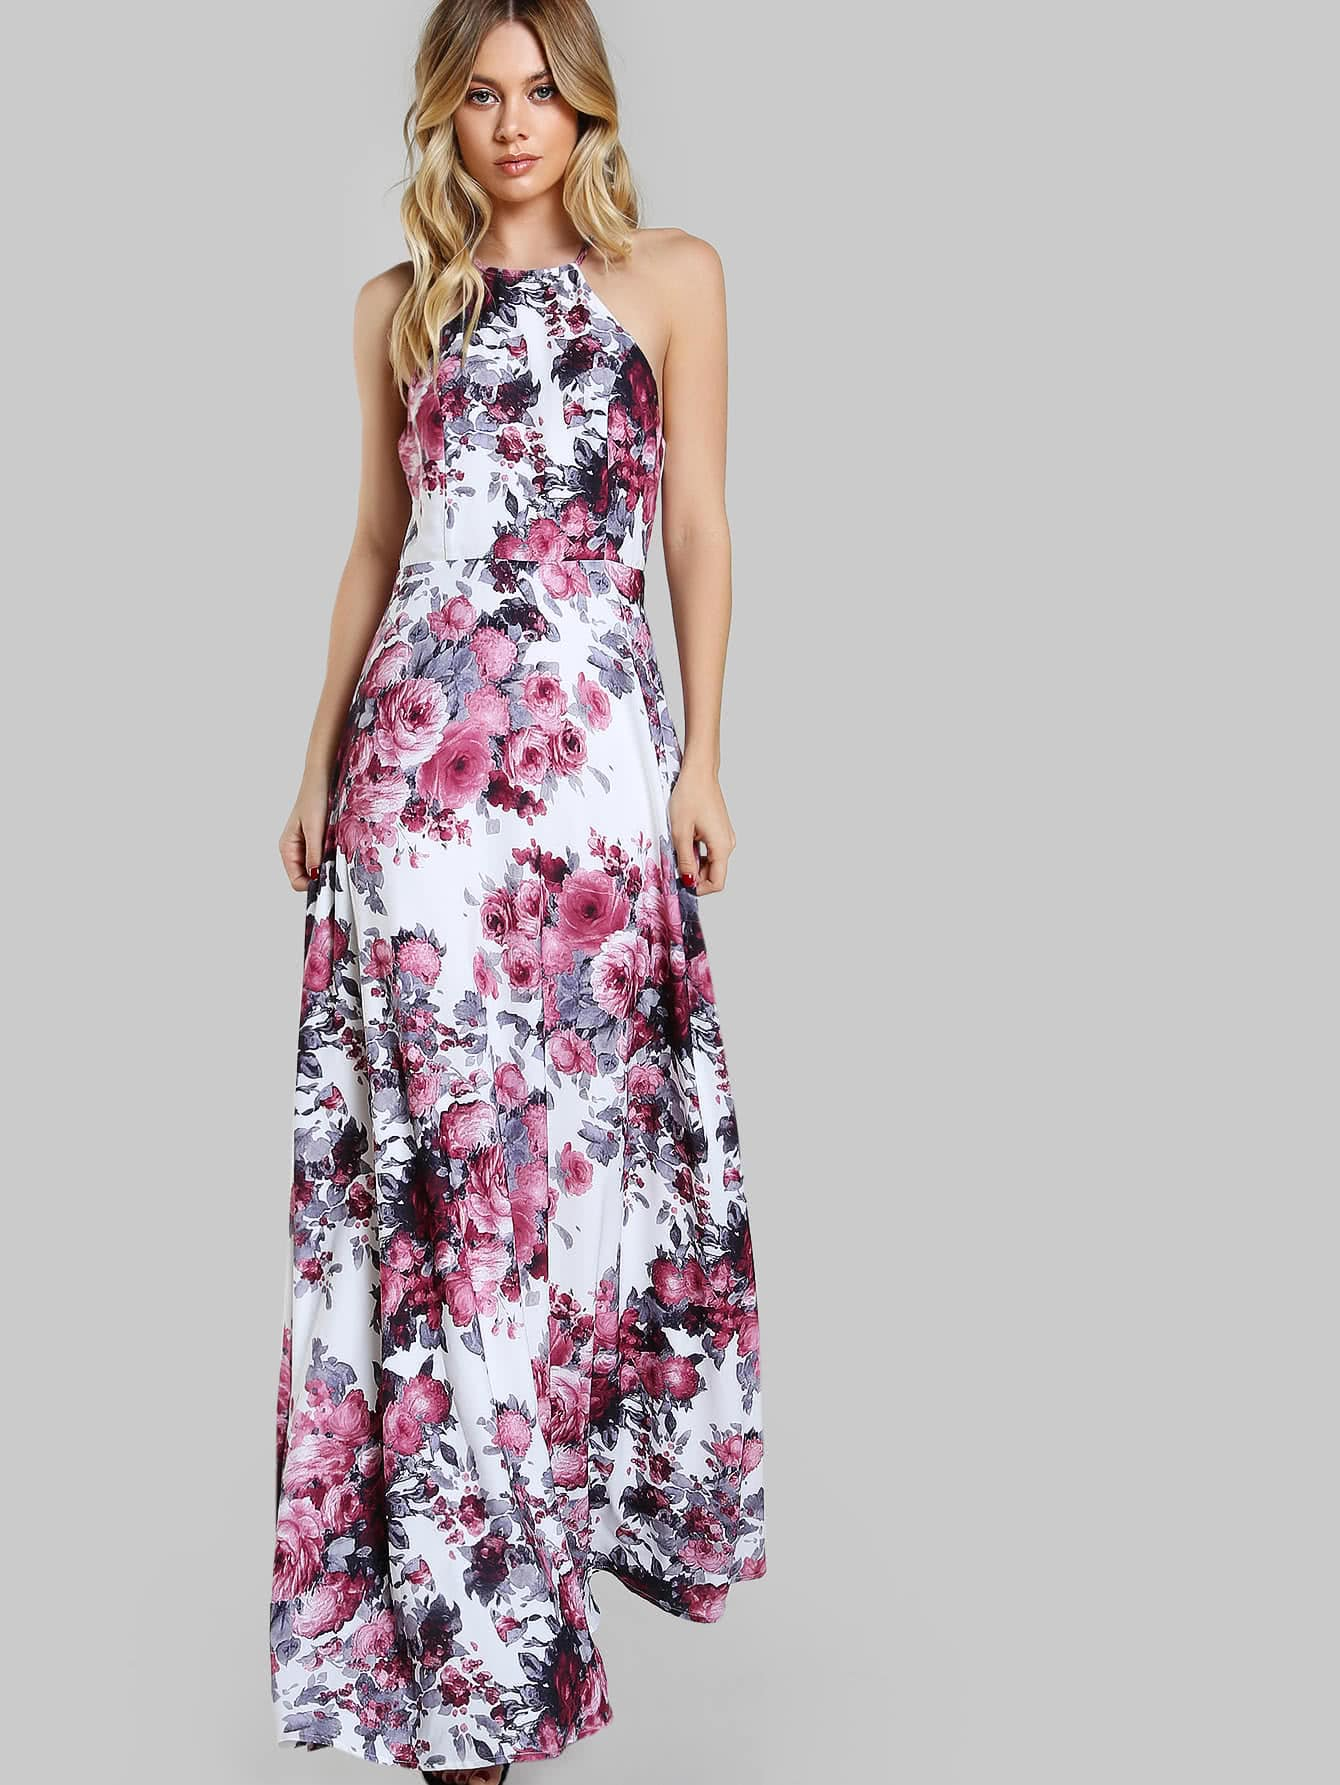 Sensual and floral dress!Shein